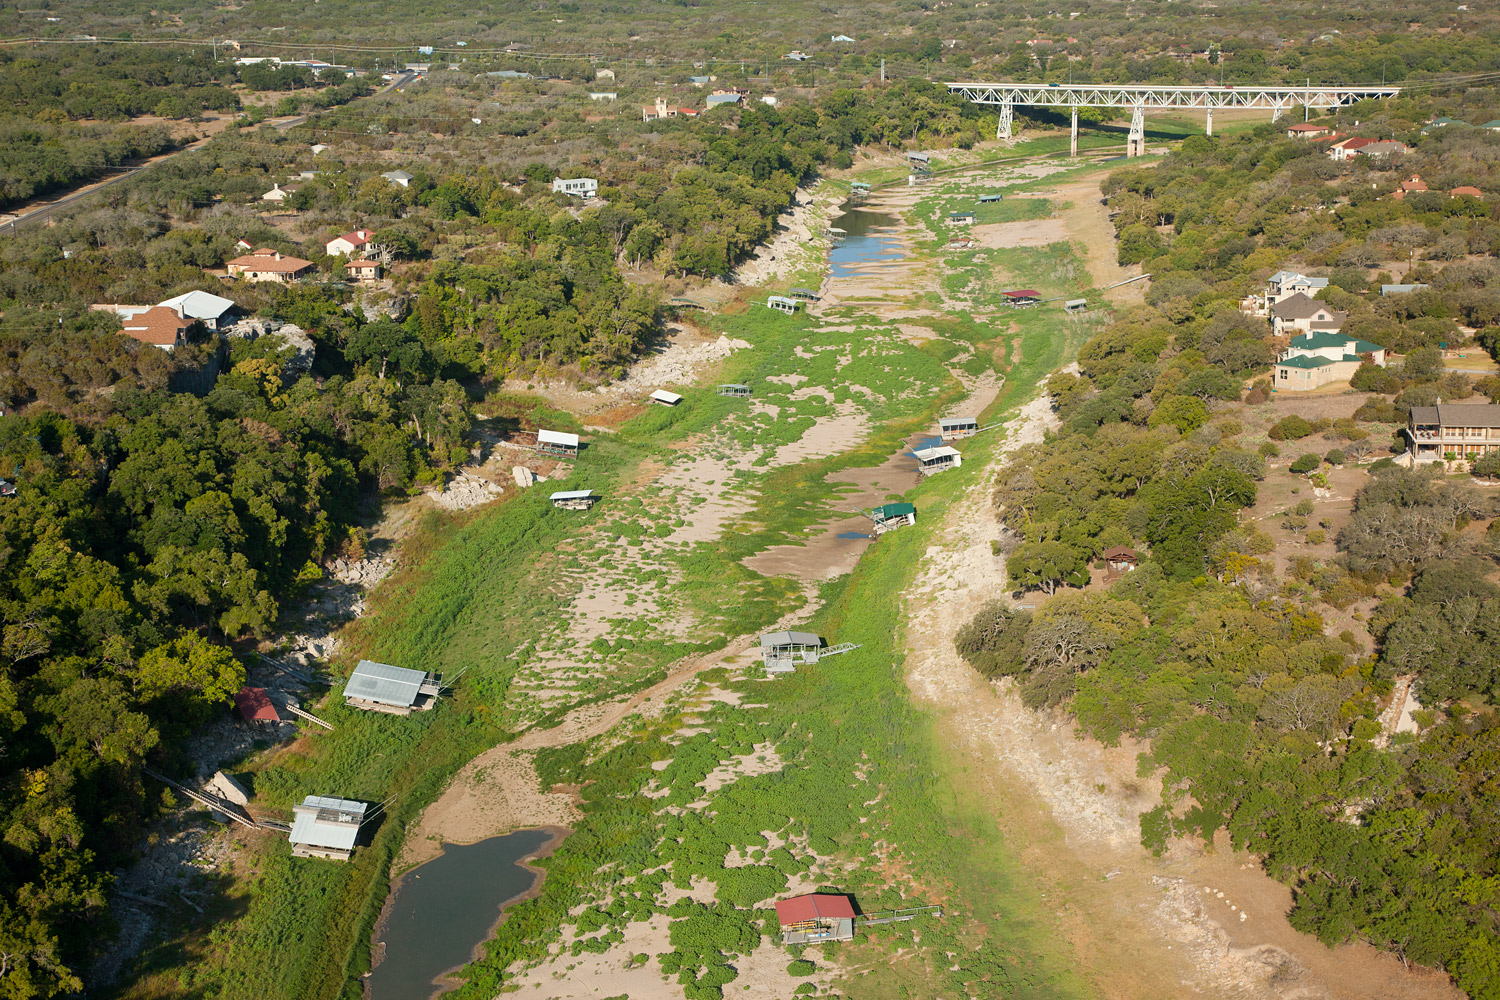 Boat docks sit on the dry bed of the Pedernales River in Texas.